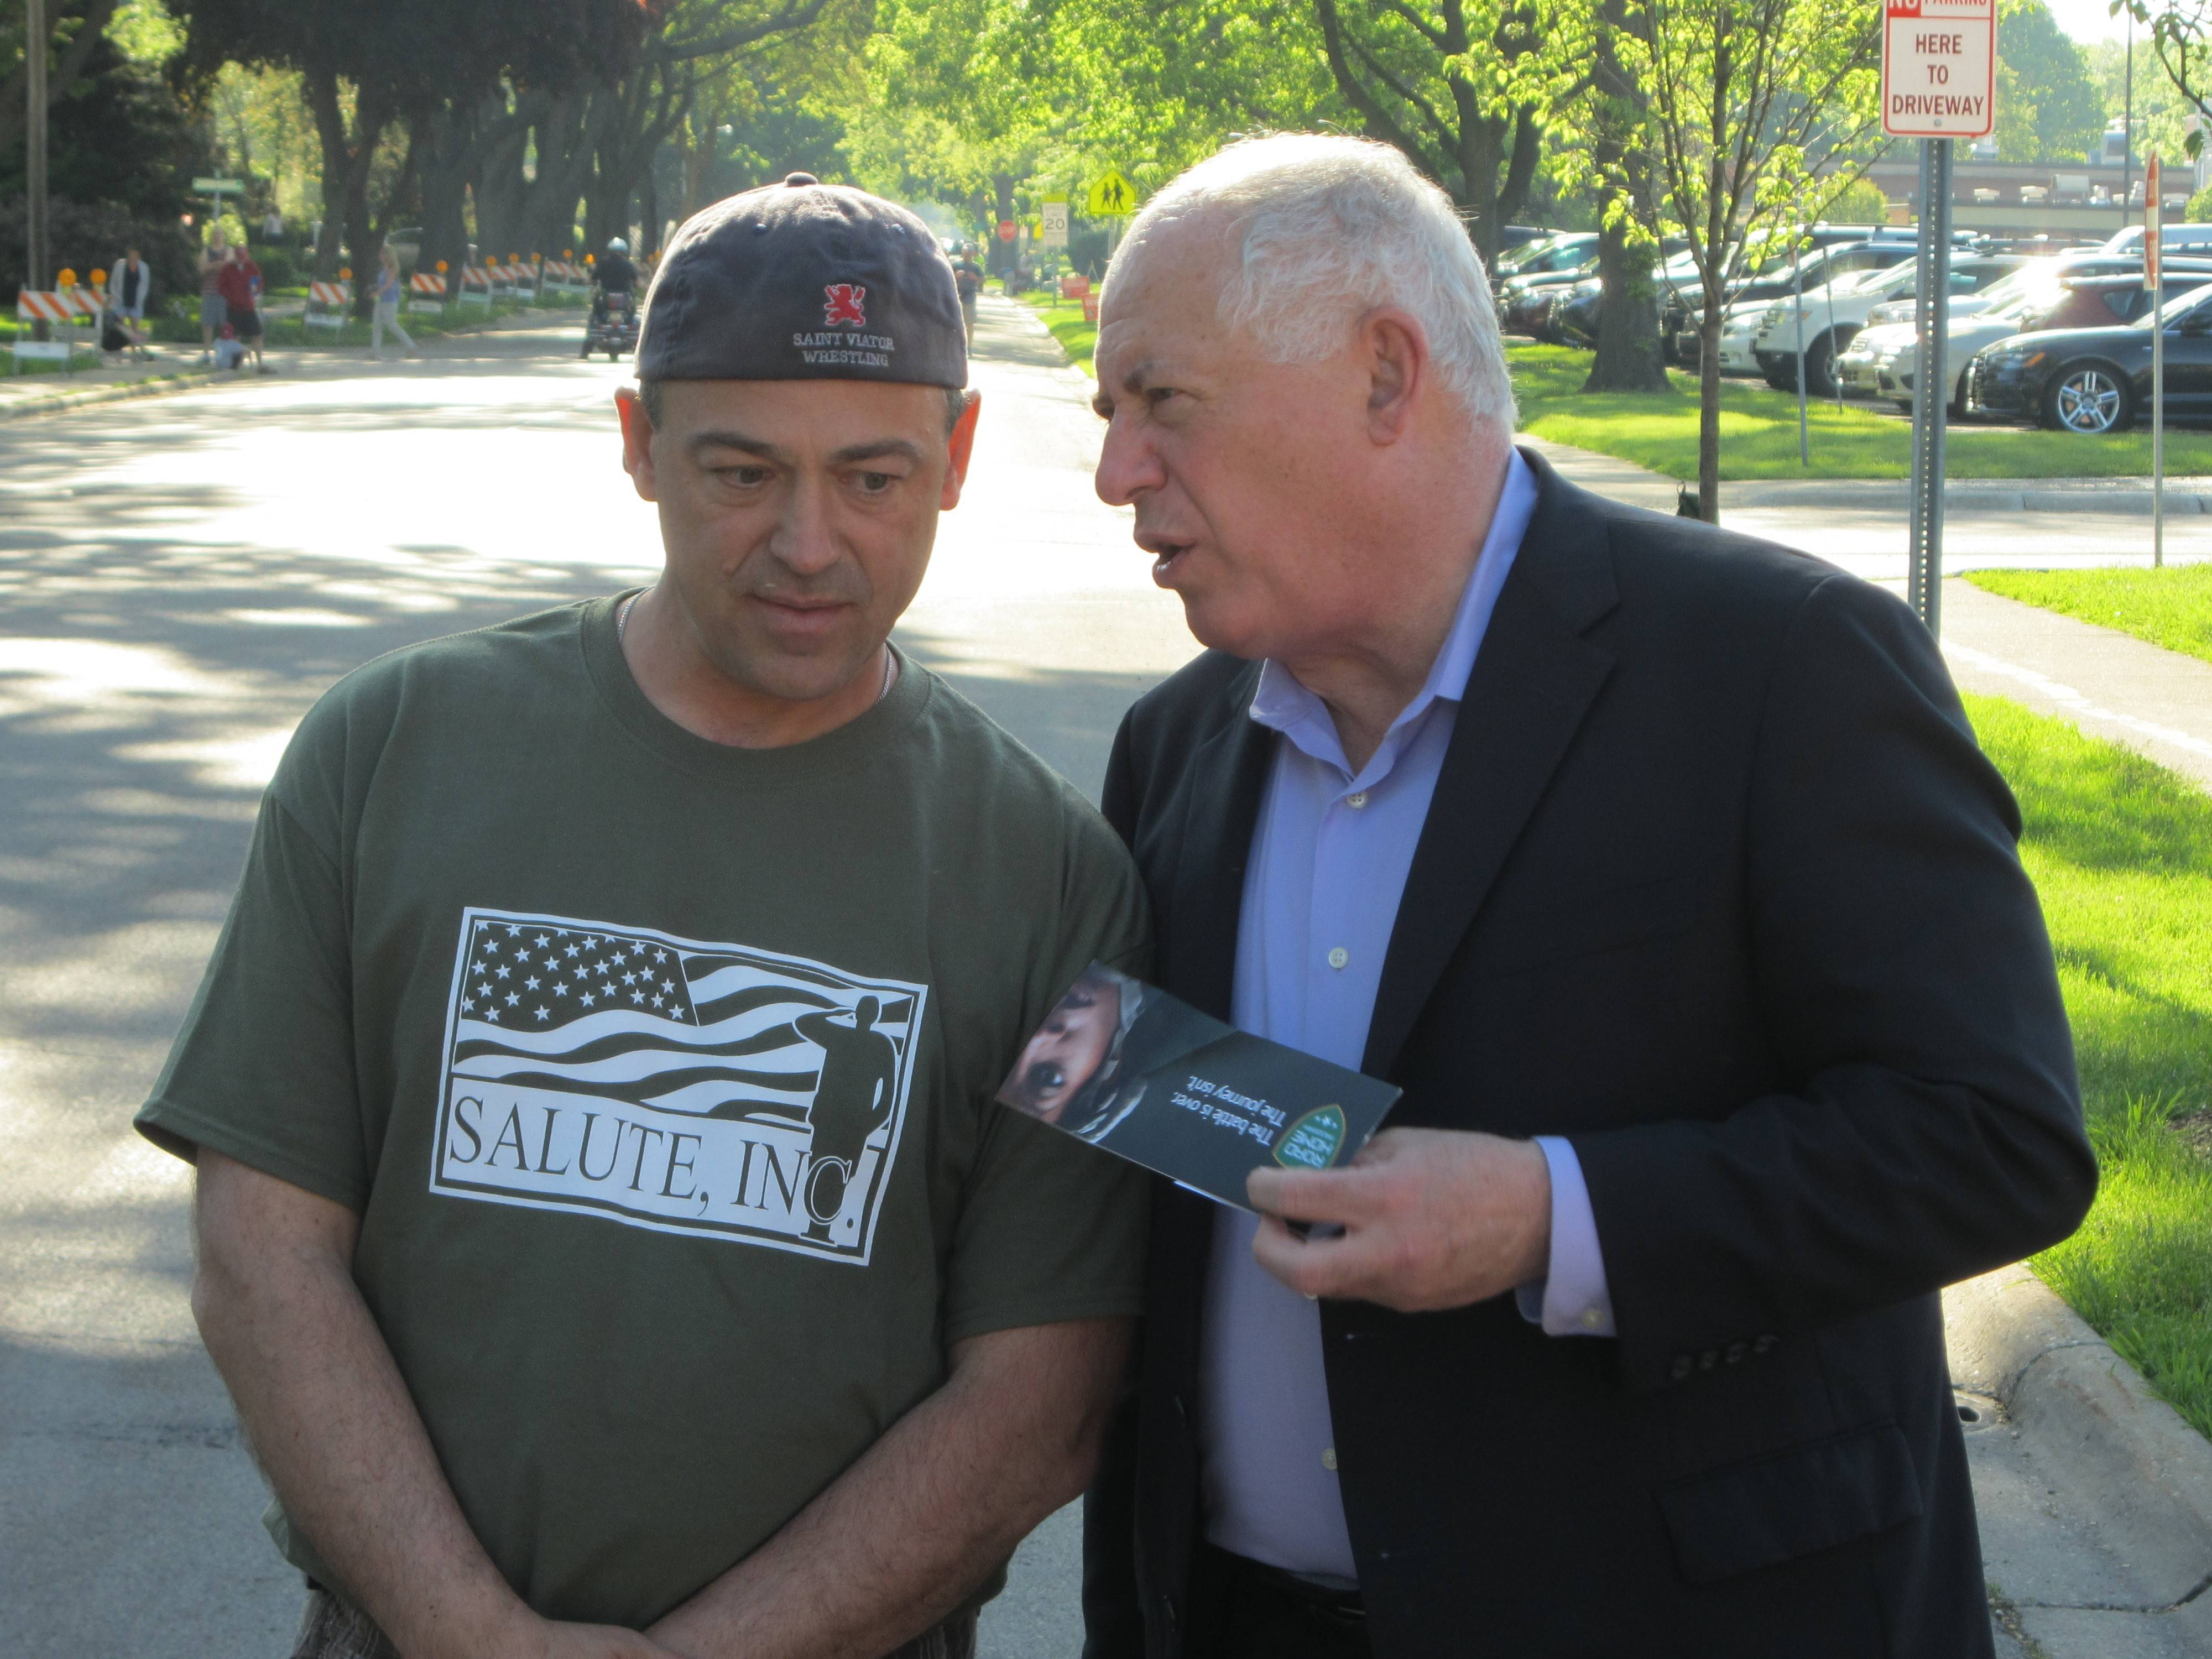 Gov. Pat Quinn, right, talks to Arlington Heights resident Will Beiersdorf, who co-founded Salute Inc. with his wife, Mary Beth. The Beiersdorfs have organized the group's annual Memorial Day weekend run/walk since 2003.